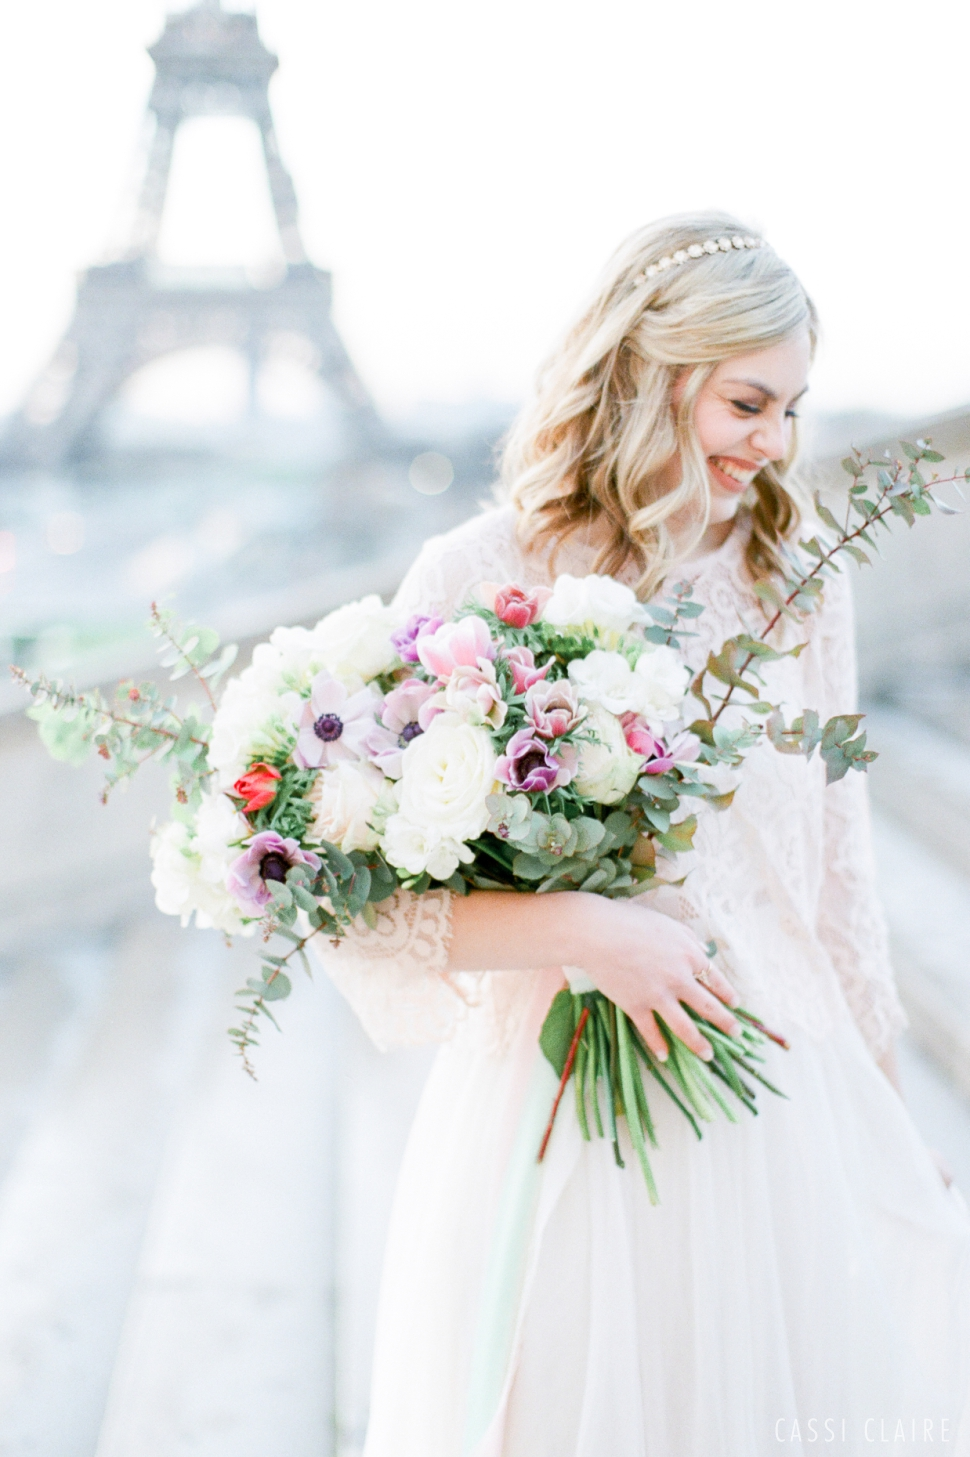 Paris-France-Wedding_CassiClaire_02.jpg